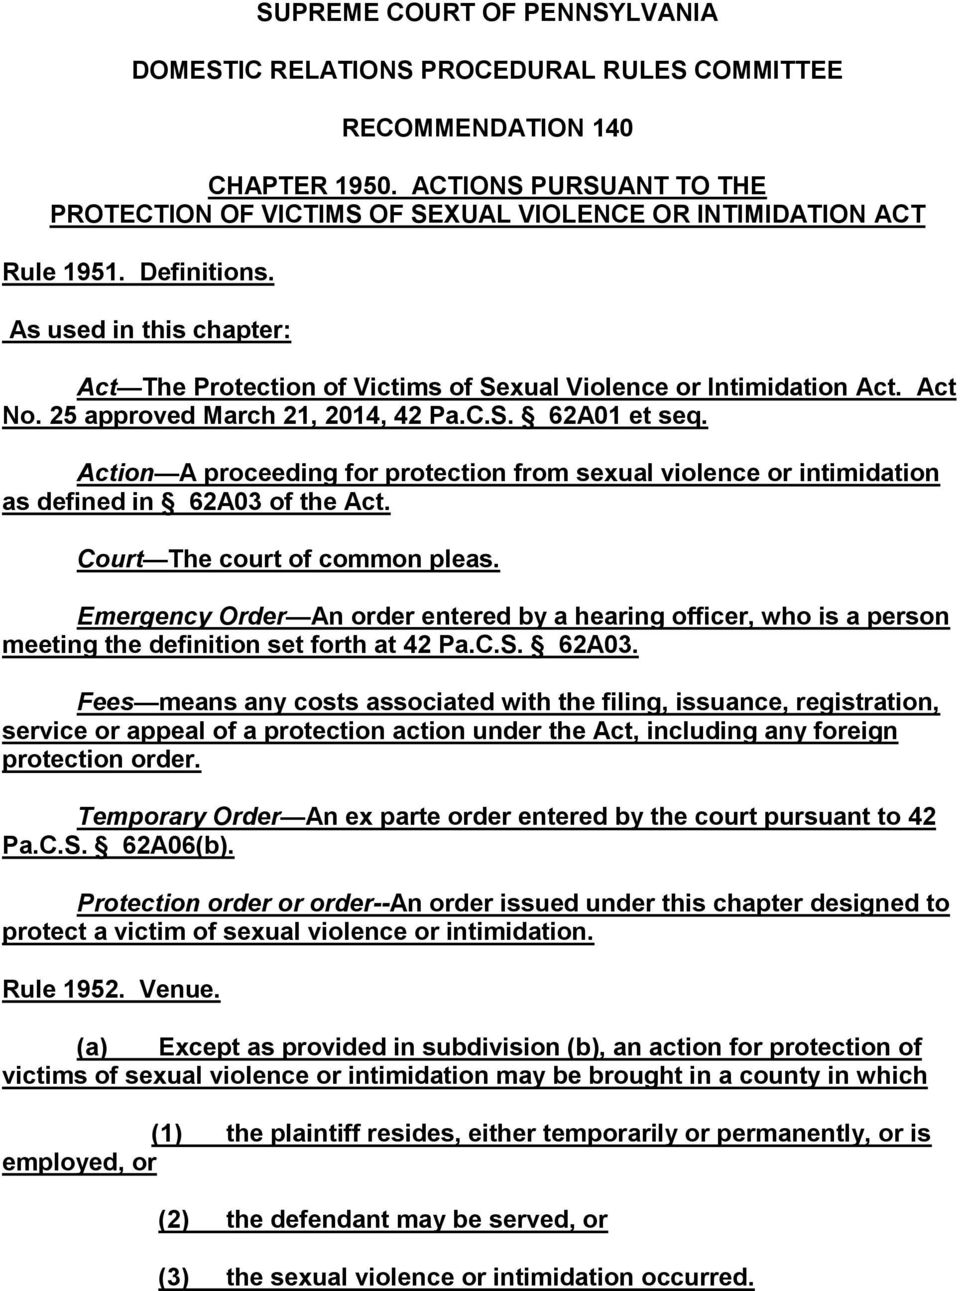 As used in this chapter: Act The Protection of Victims of Sexual Violence or Intimidation Act. Act No. 25 approved March 21, 2014, 42 Pa.C.S. 62A01 et seq.